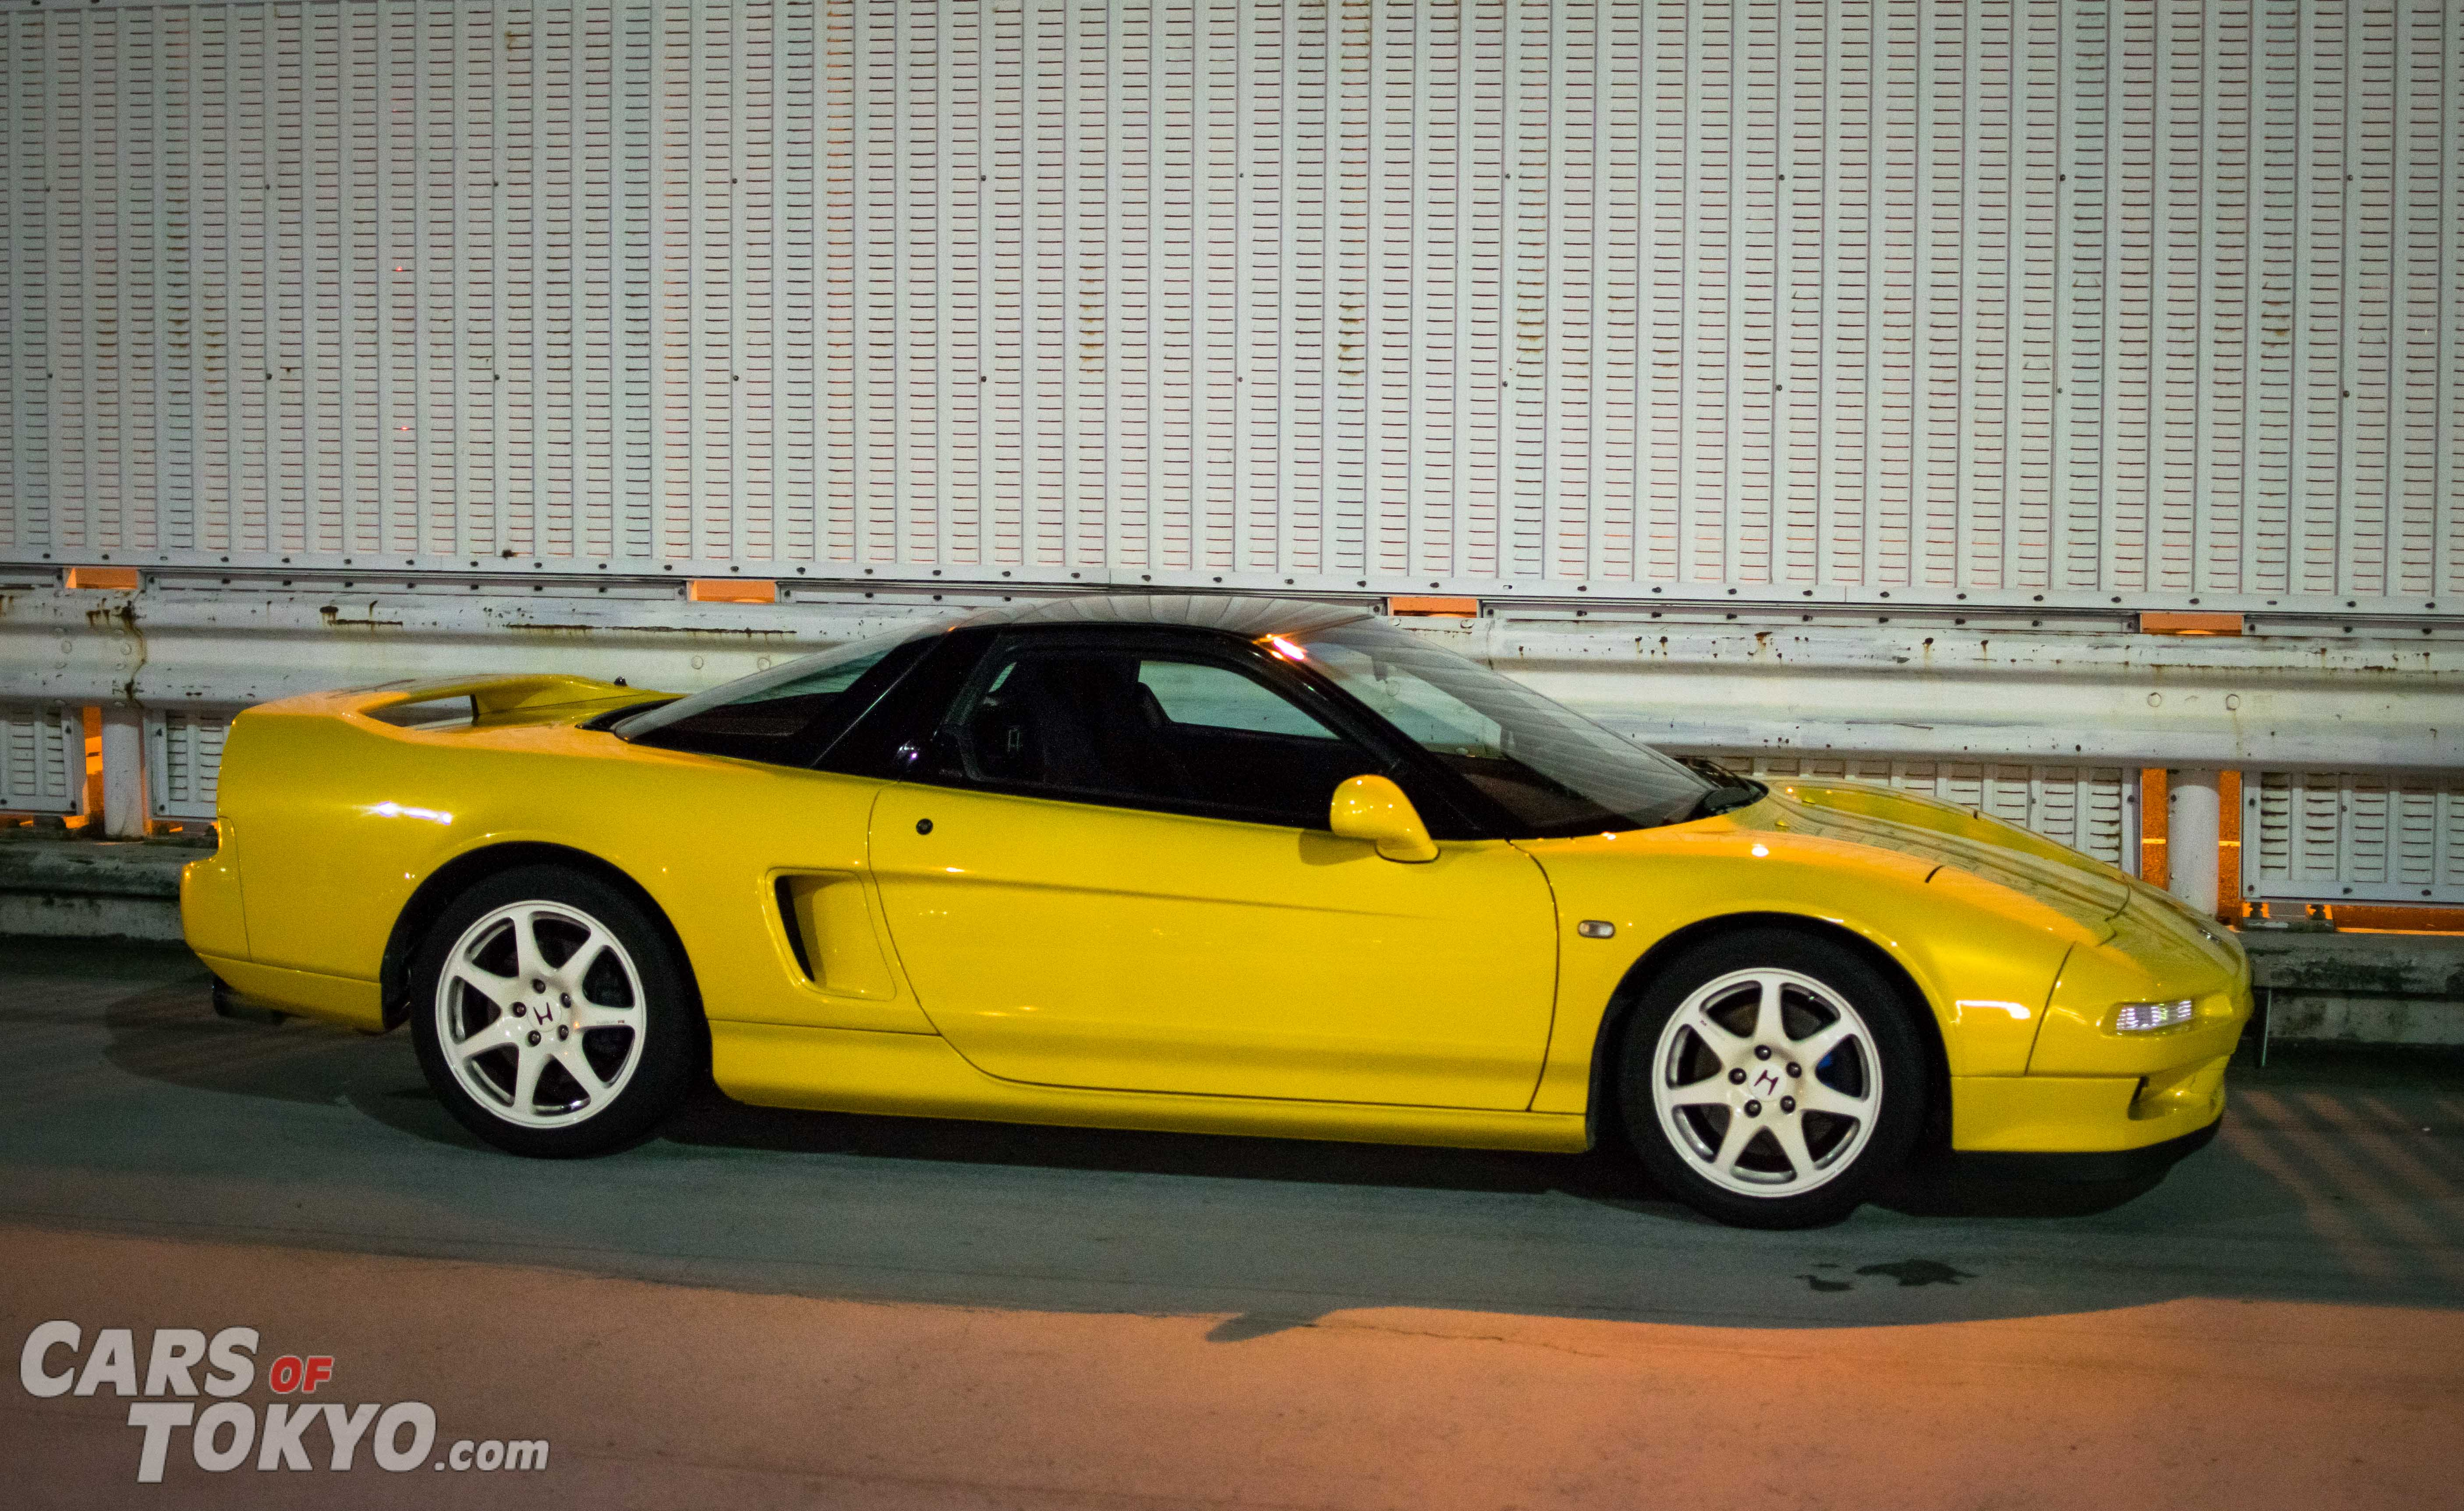 Cars of Tokyo NSX Yellow